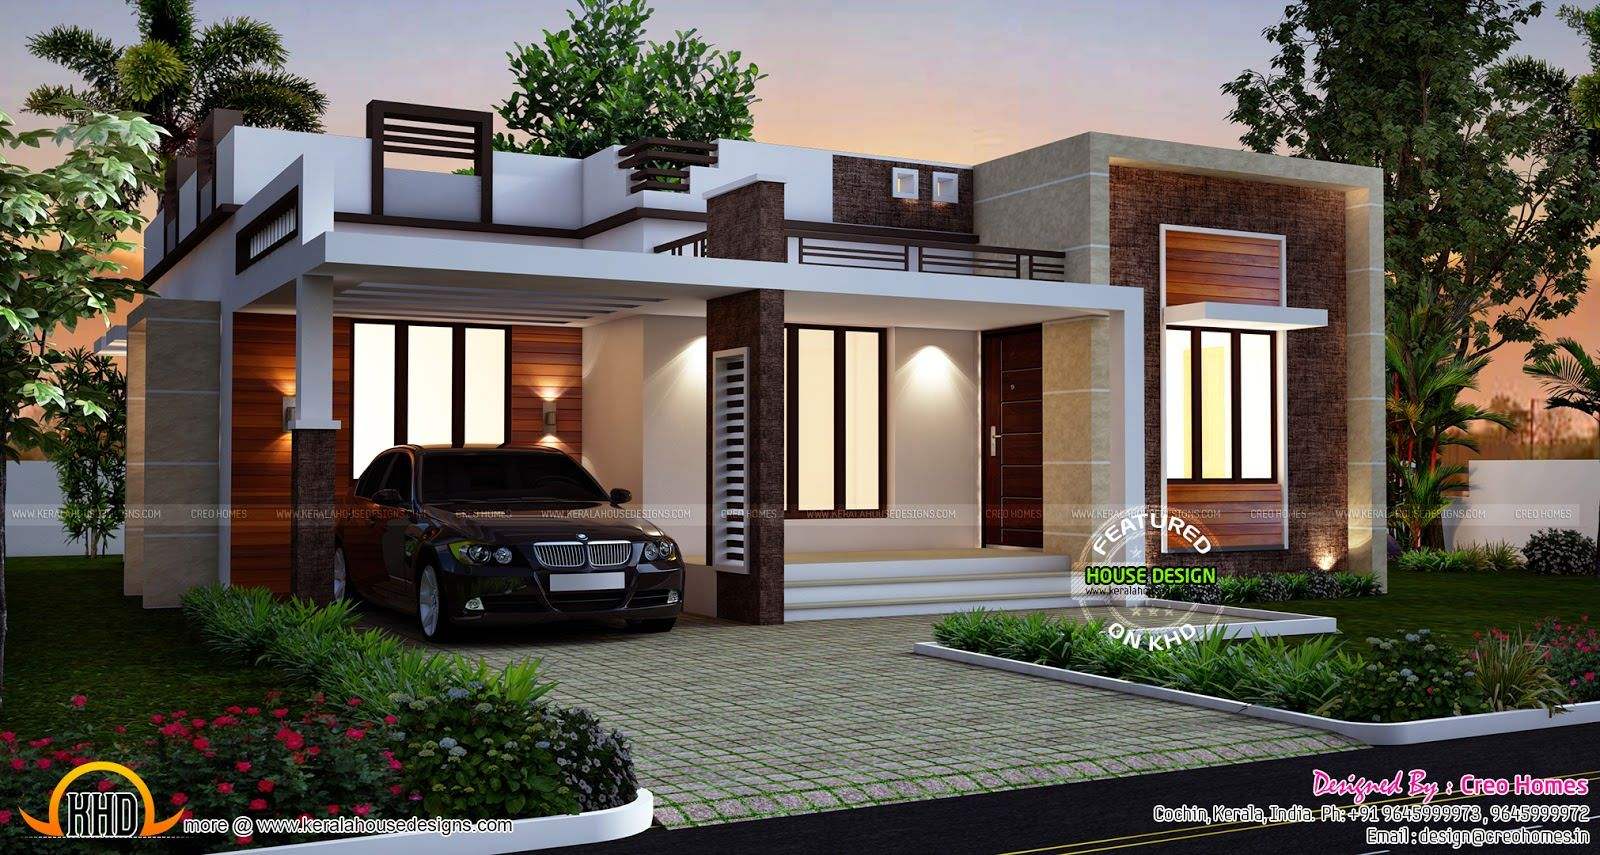 Single Story Flat Roof House Plans Jpg 1600 855 Kerala House Design House Roof Design Beautiful House Plans